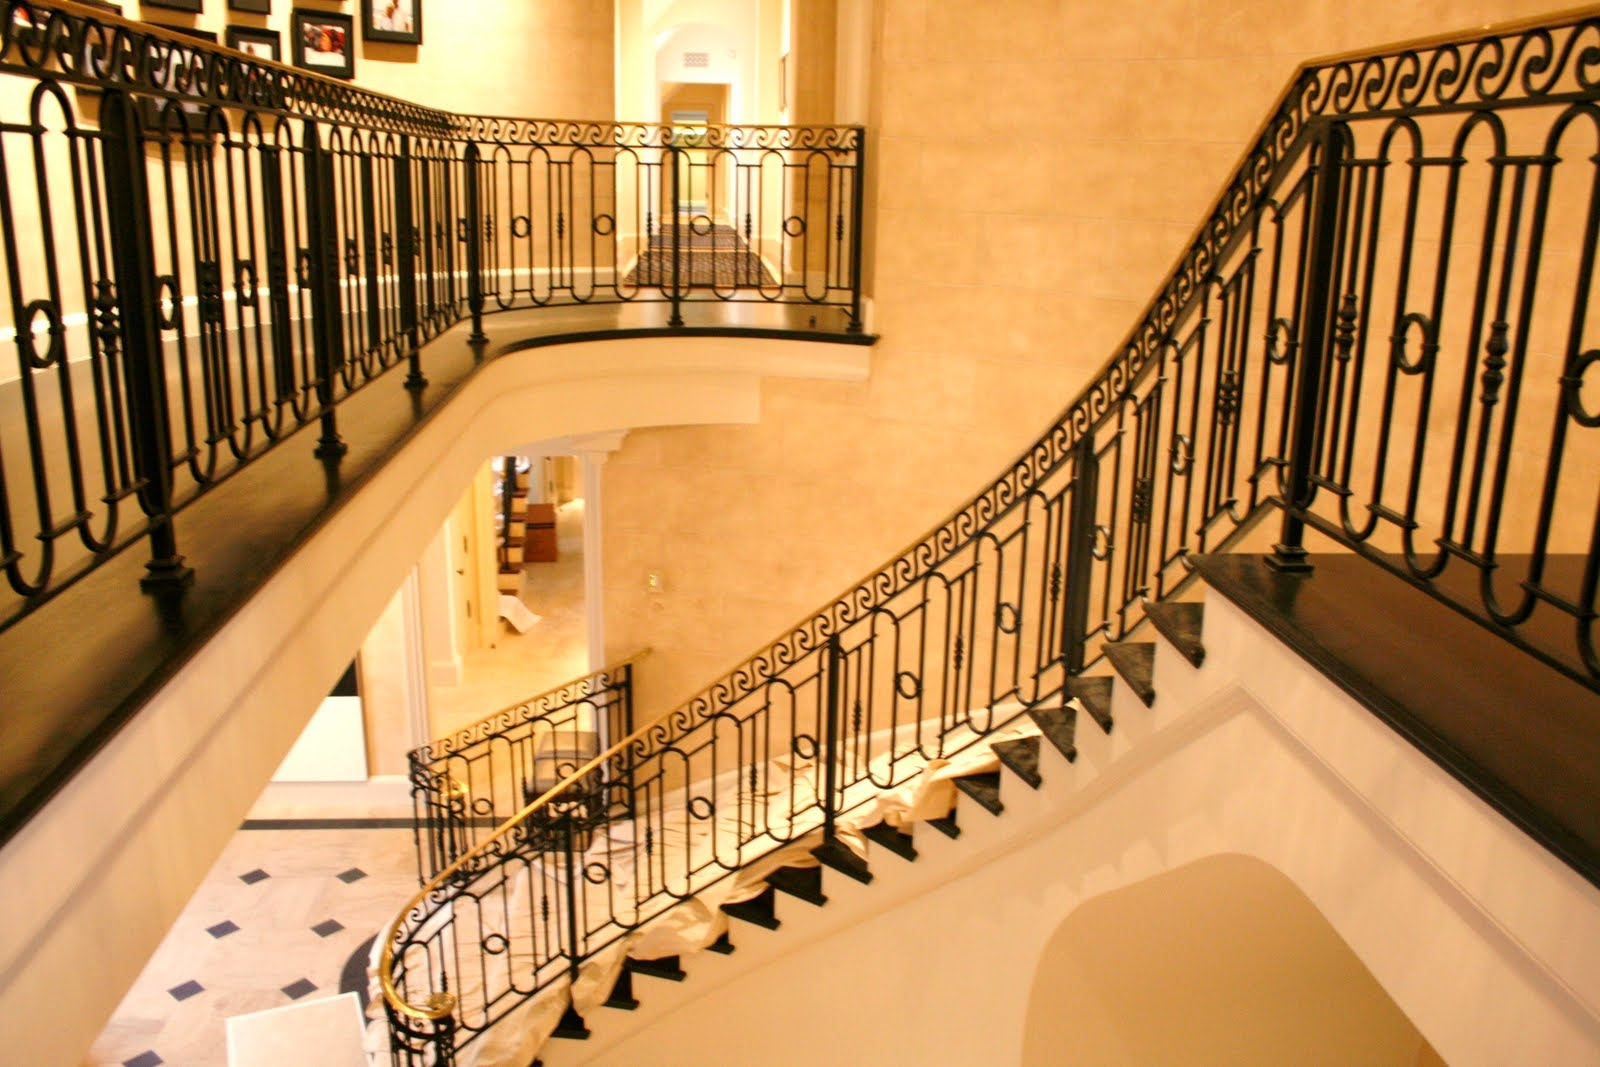 Wrought Iron Outdoor Stair Railings Made To Order | Outdoor Iron Stair Railing | Porch | Iron Pipe | Commercial | Galvanized Iron | Redwood